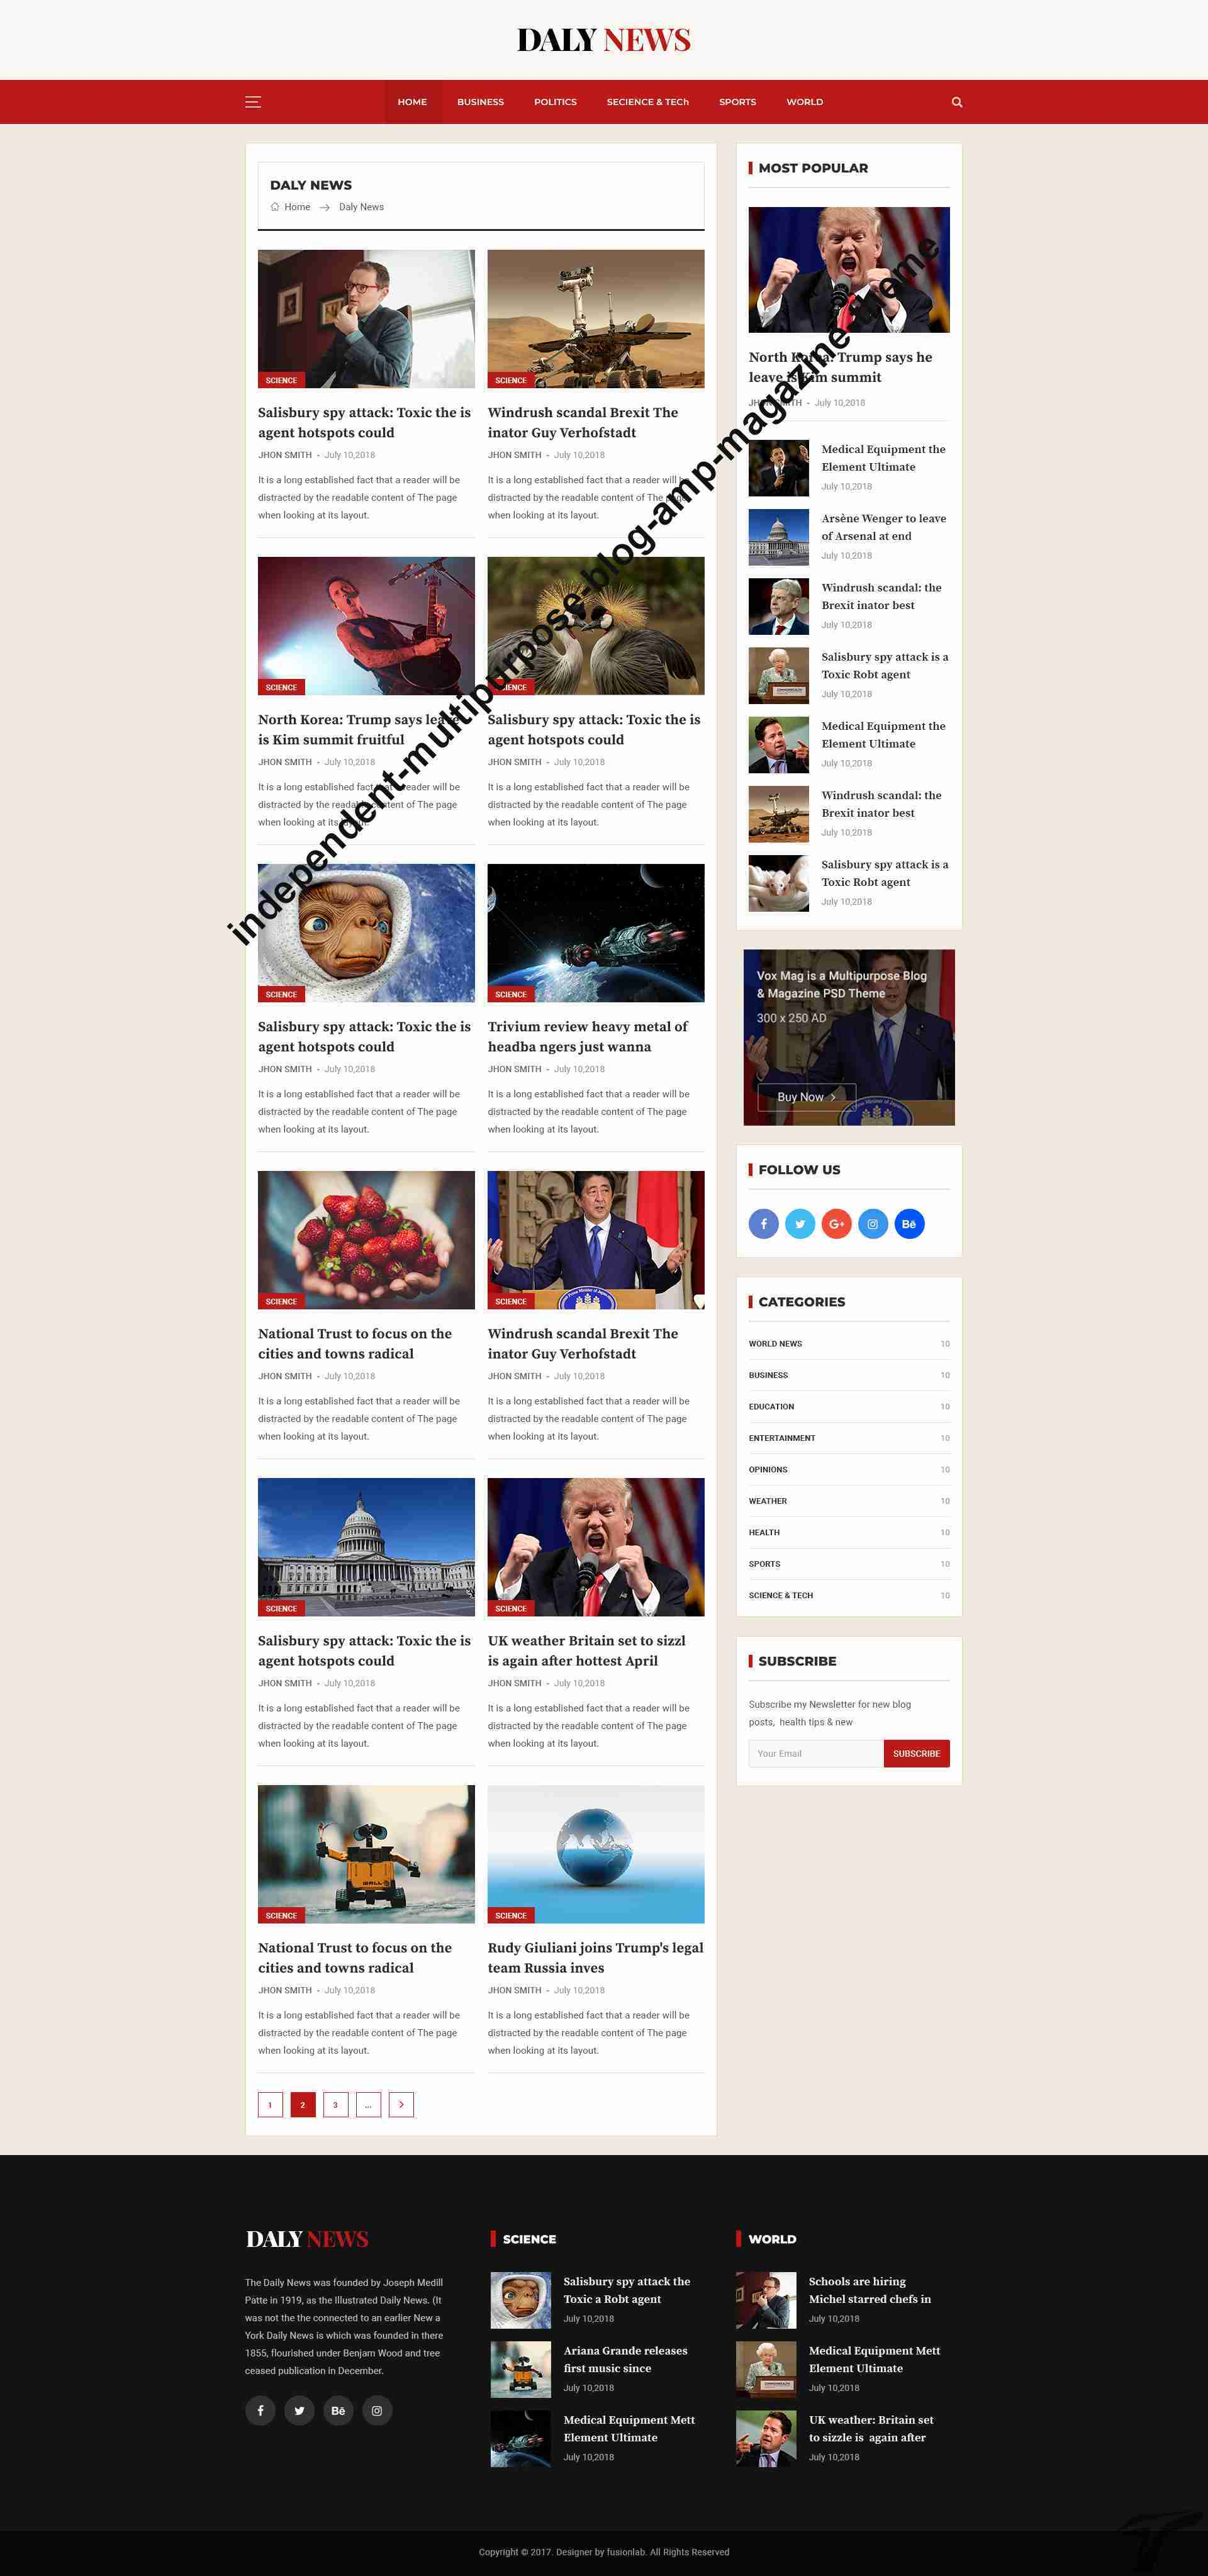 https://images.besthemes.com/images/h1_independent-multipurpose-blog-amp-magazine-theme36-_-249989416/Theme-s20s-Preview/35-Listing-s20s-Blog.jpg